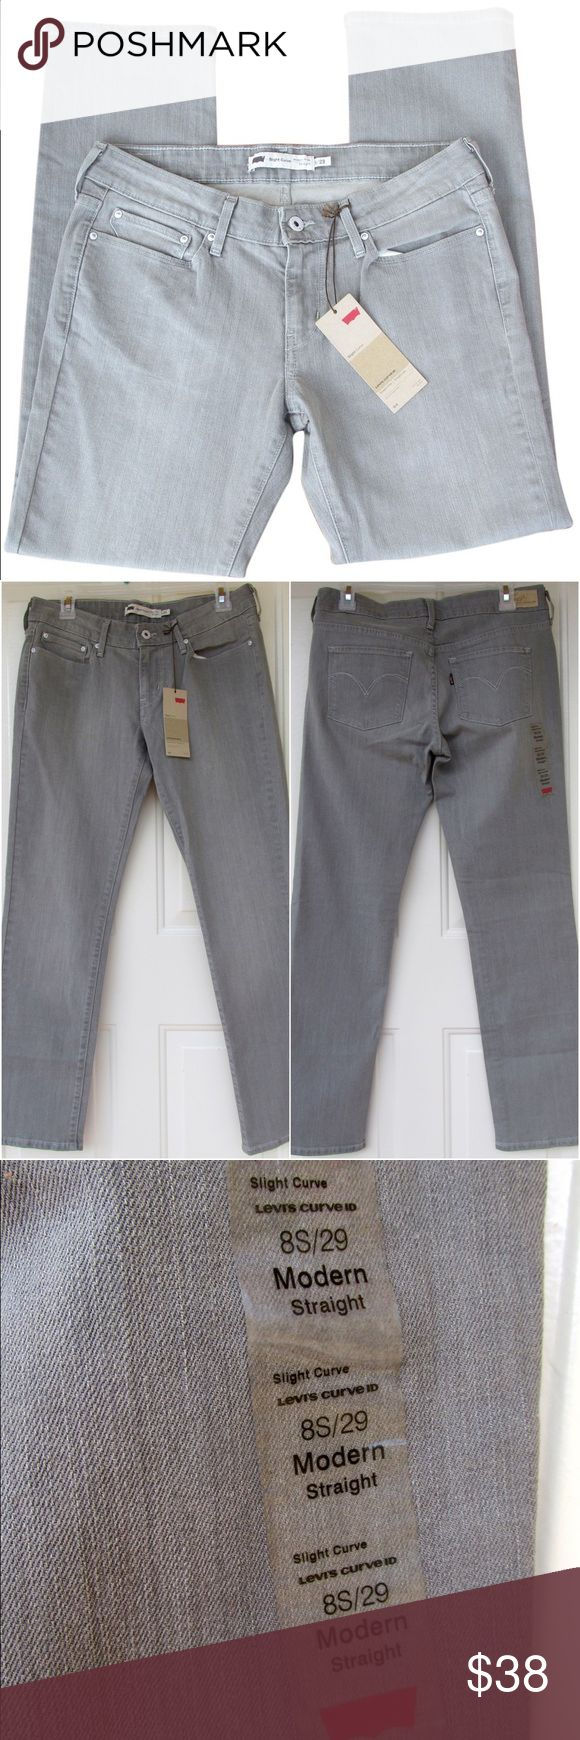 ✨SALE🆕Levi's Grey Washed Straight Jeans ~SALE!✨Reduced from $38 to $30. Weekend price is firm!~  NWT! New with tags! These are Levi's jeans in a medium wash grey color. The model is Slight Curve, they are modern rise, and straight leg. No swaps/trades. Levi's Jeans Straight Leg